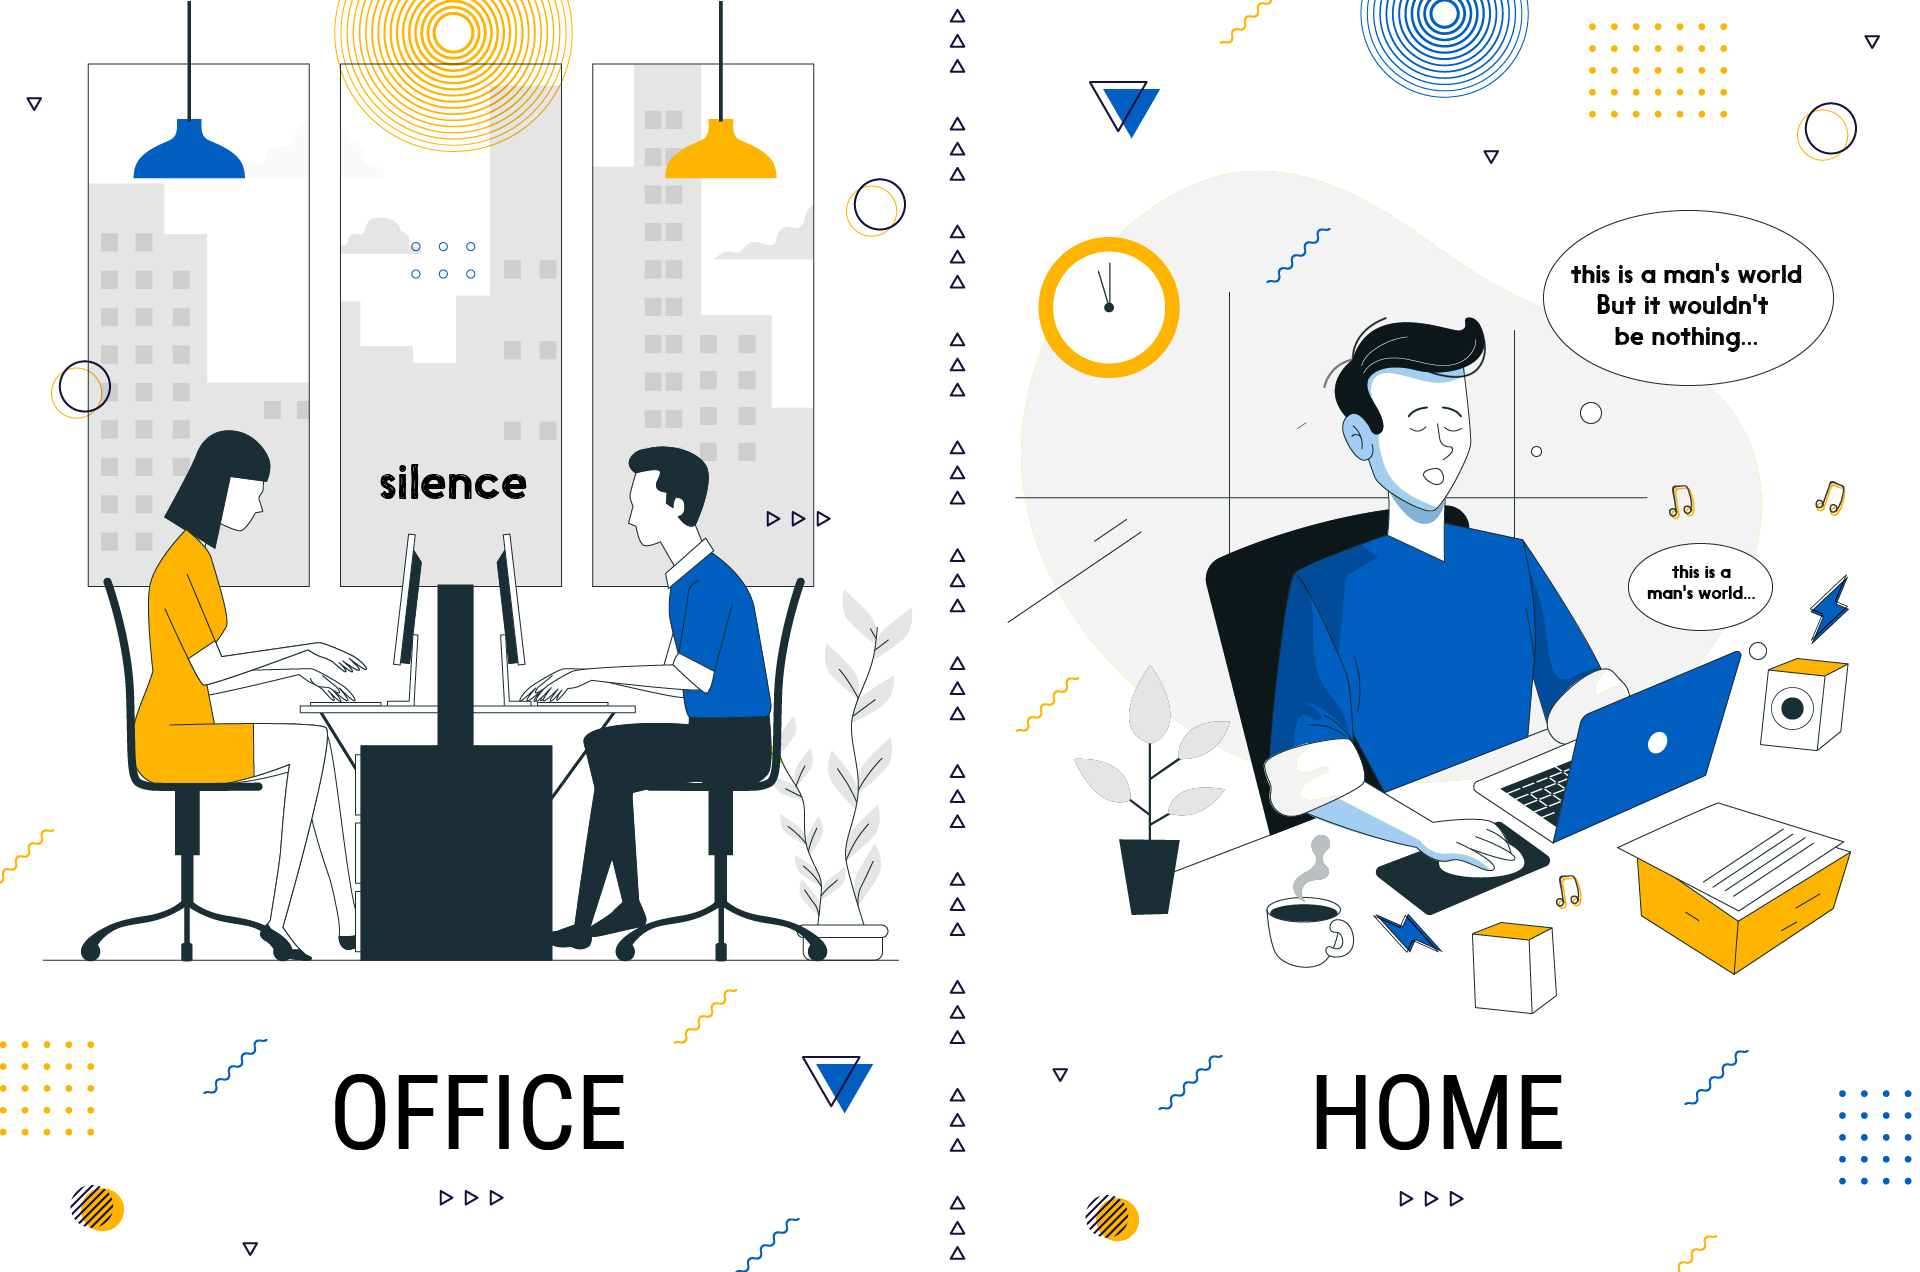 in-office work vs work from home